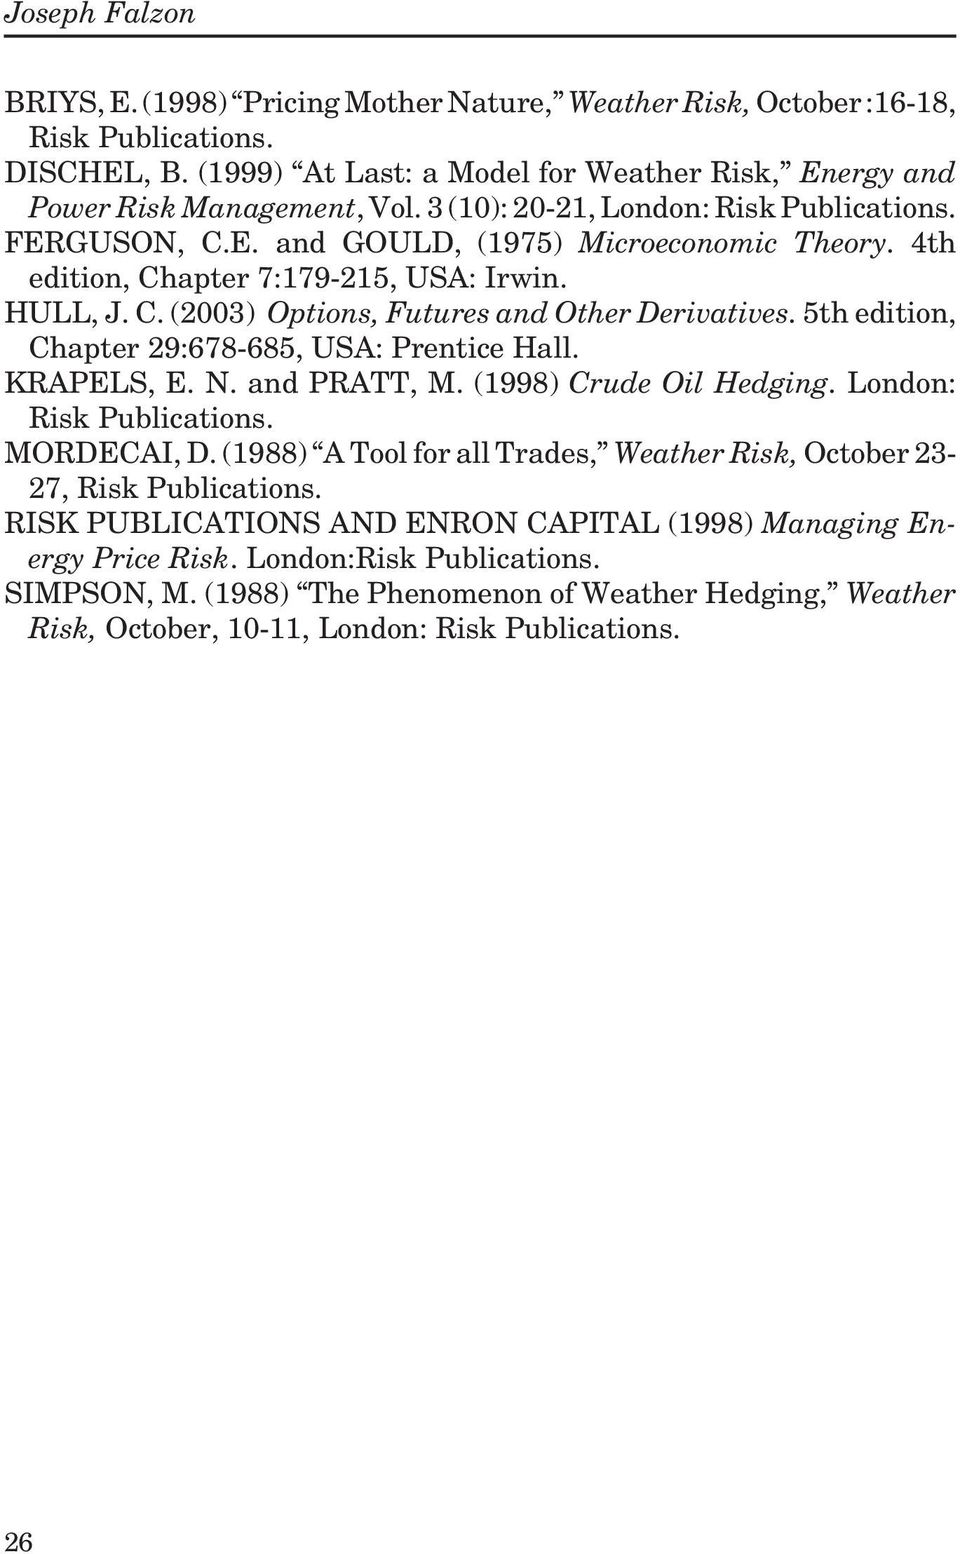 5th edition, Chapter 29:678-685, USA: Prentice Hall. KRAPELS, E. N. and PRATT, M. (1998) Crude Oil Hedging. London: Risk Publications. MORDECAI, D.